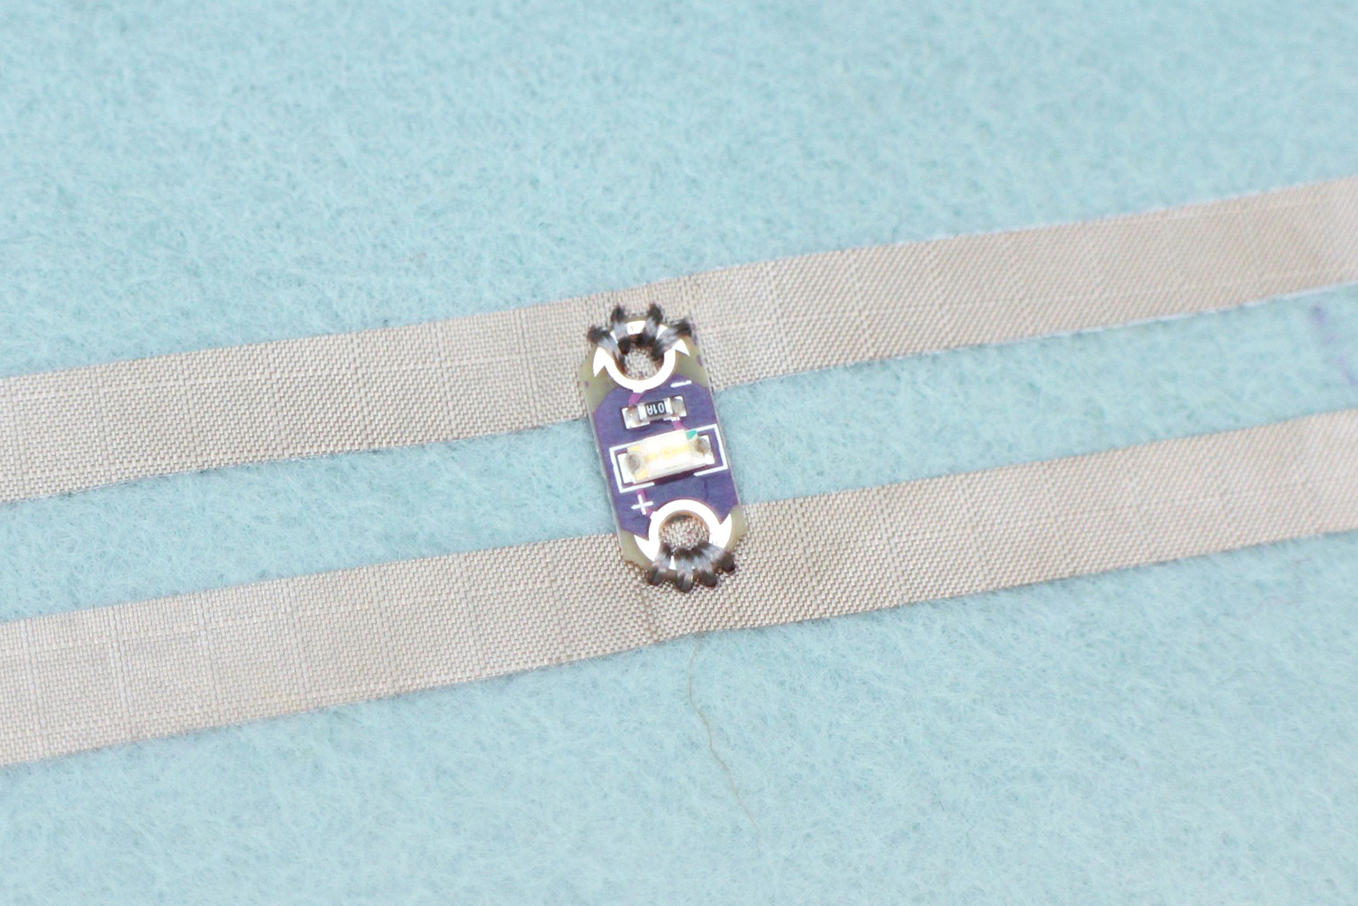 Sew A Circuit Above Short To Ground Correct This Is An Led With No Occurring Between Power And